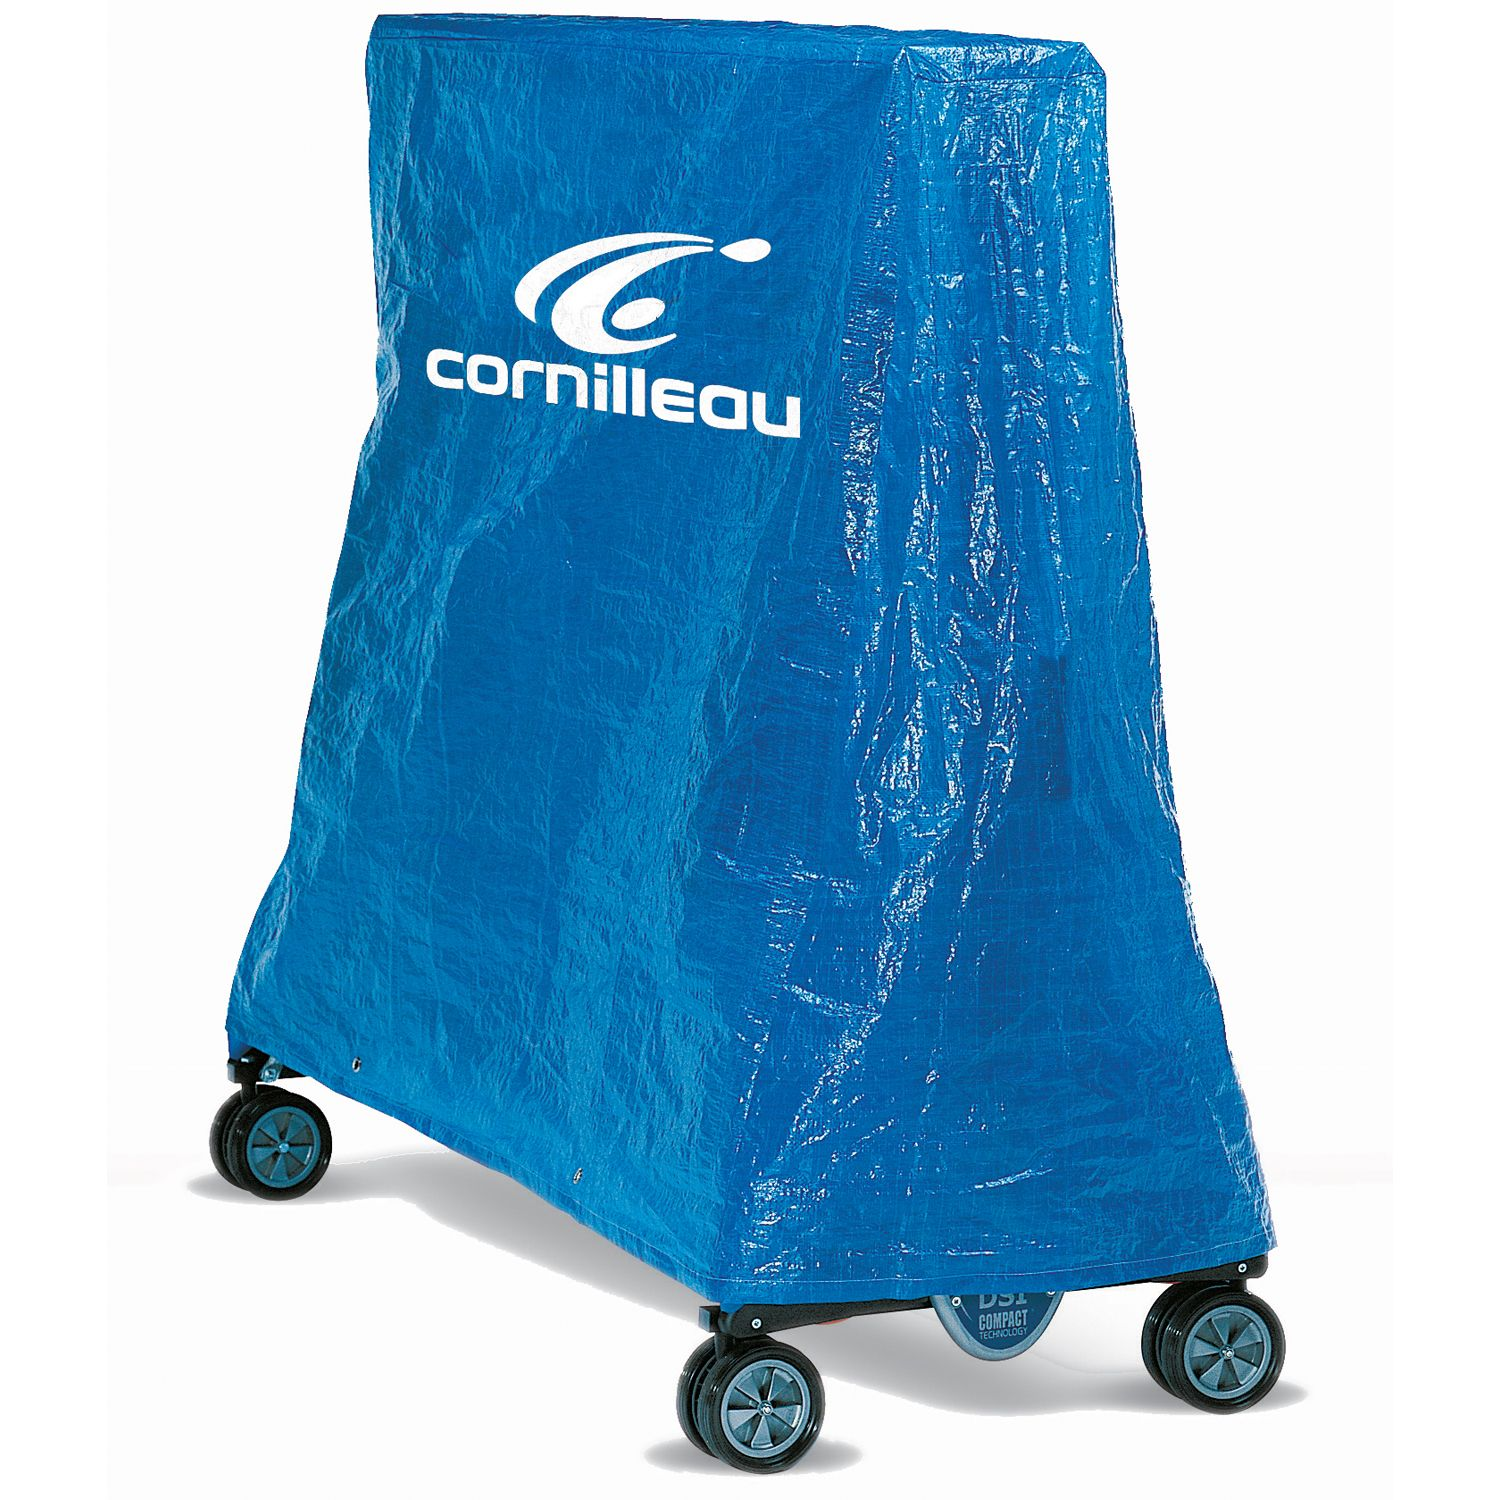 Cornilleau pvc cover for rollaway compact tables - Cornilleau outdoor table tennis cover ...